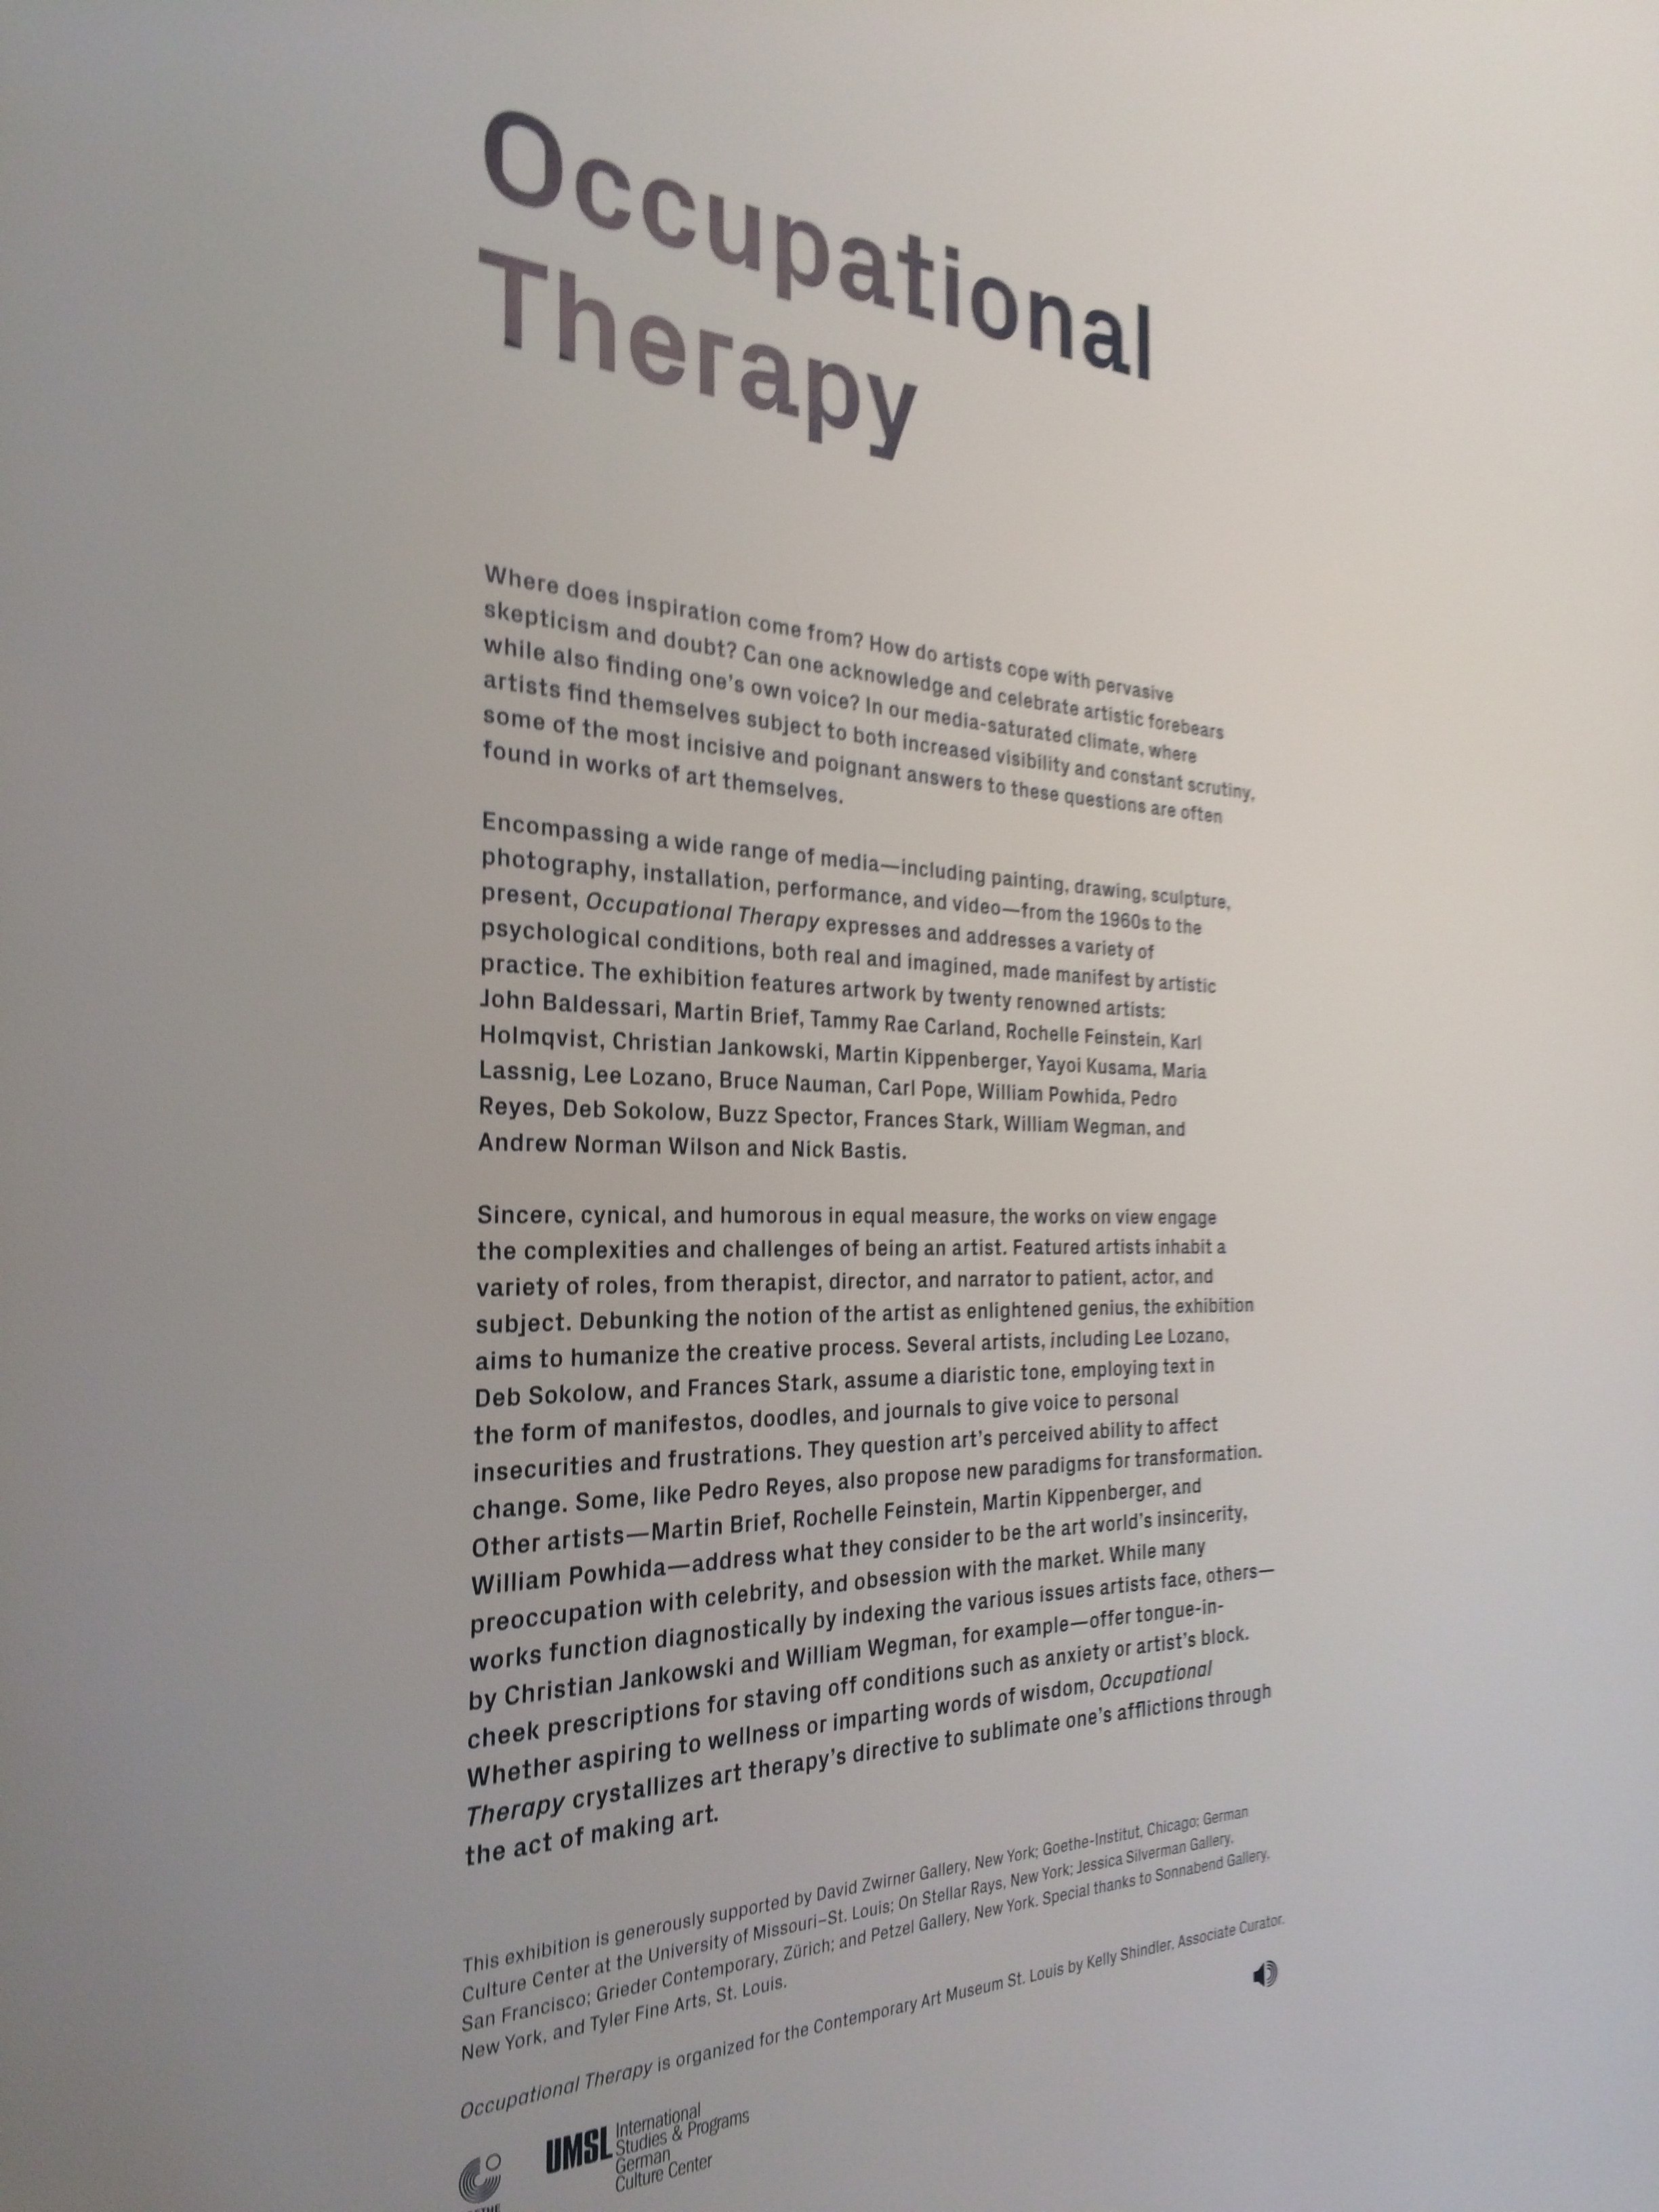 Promoting occupational therapy in different areas